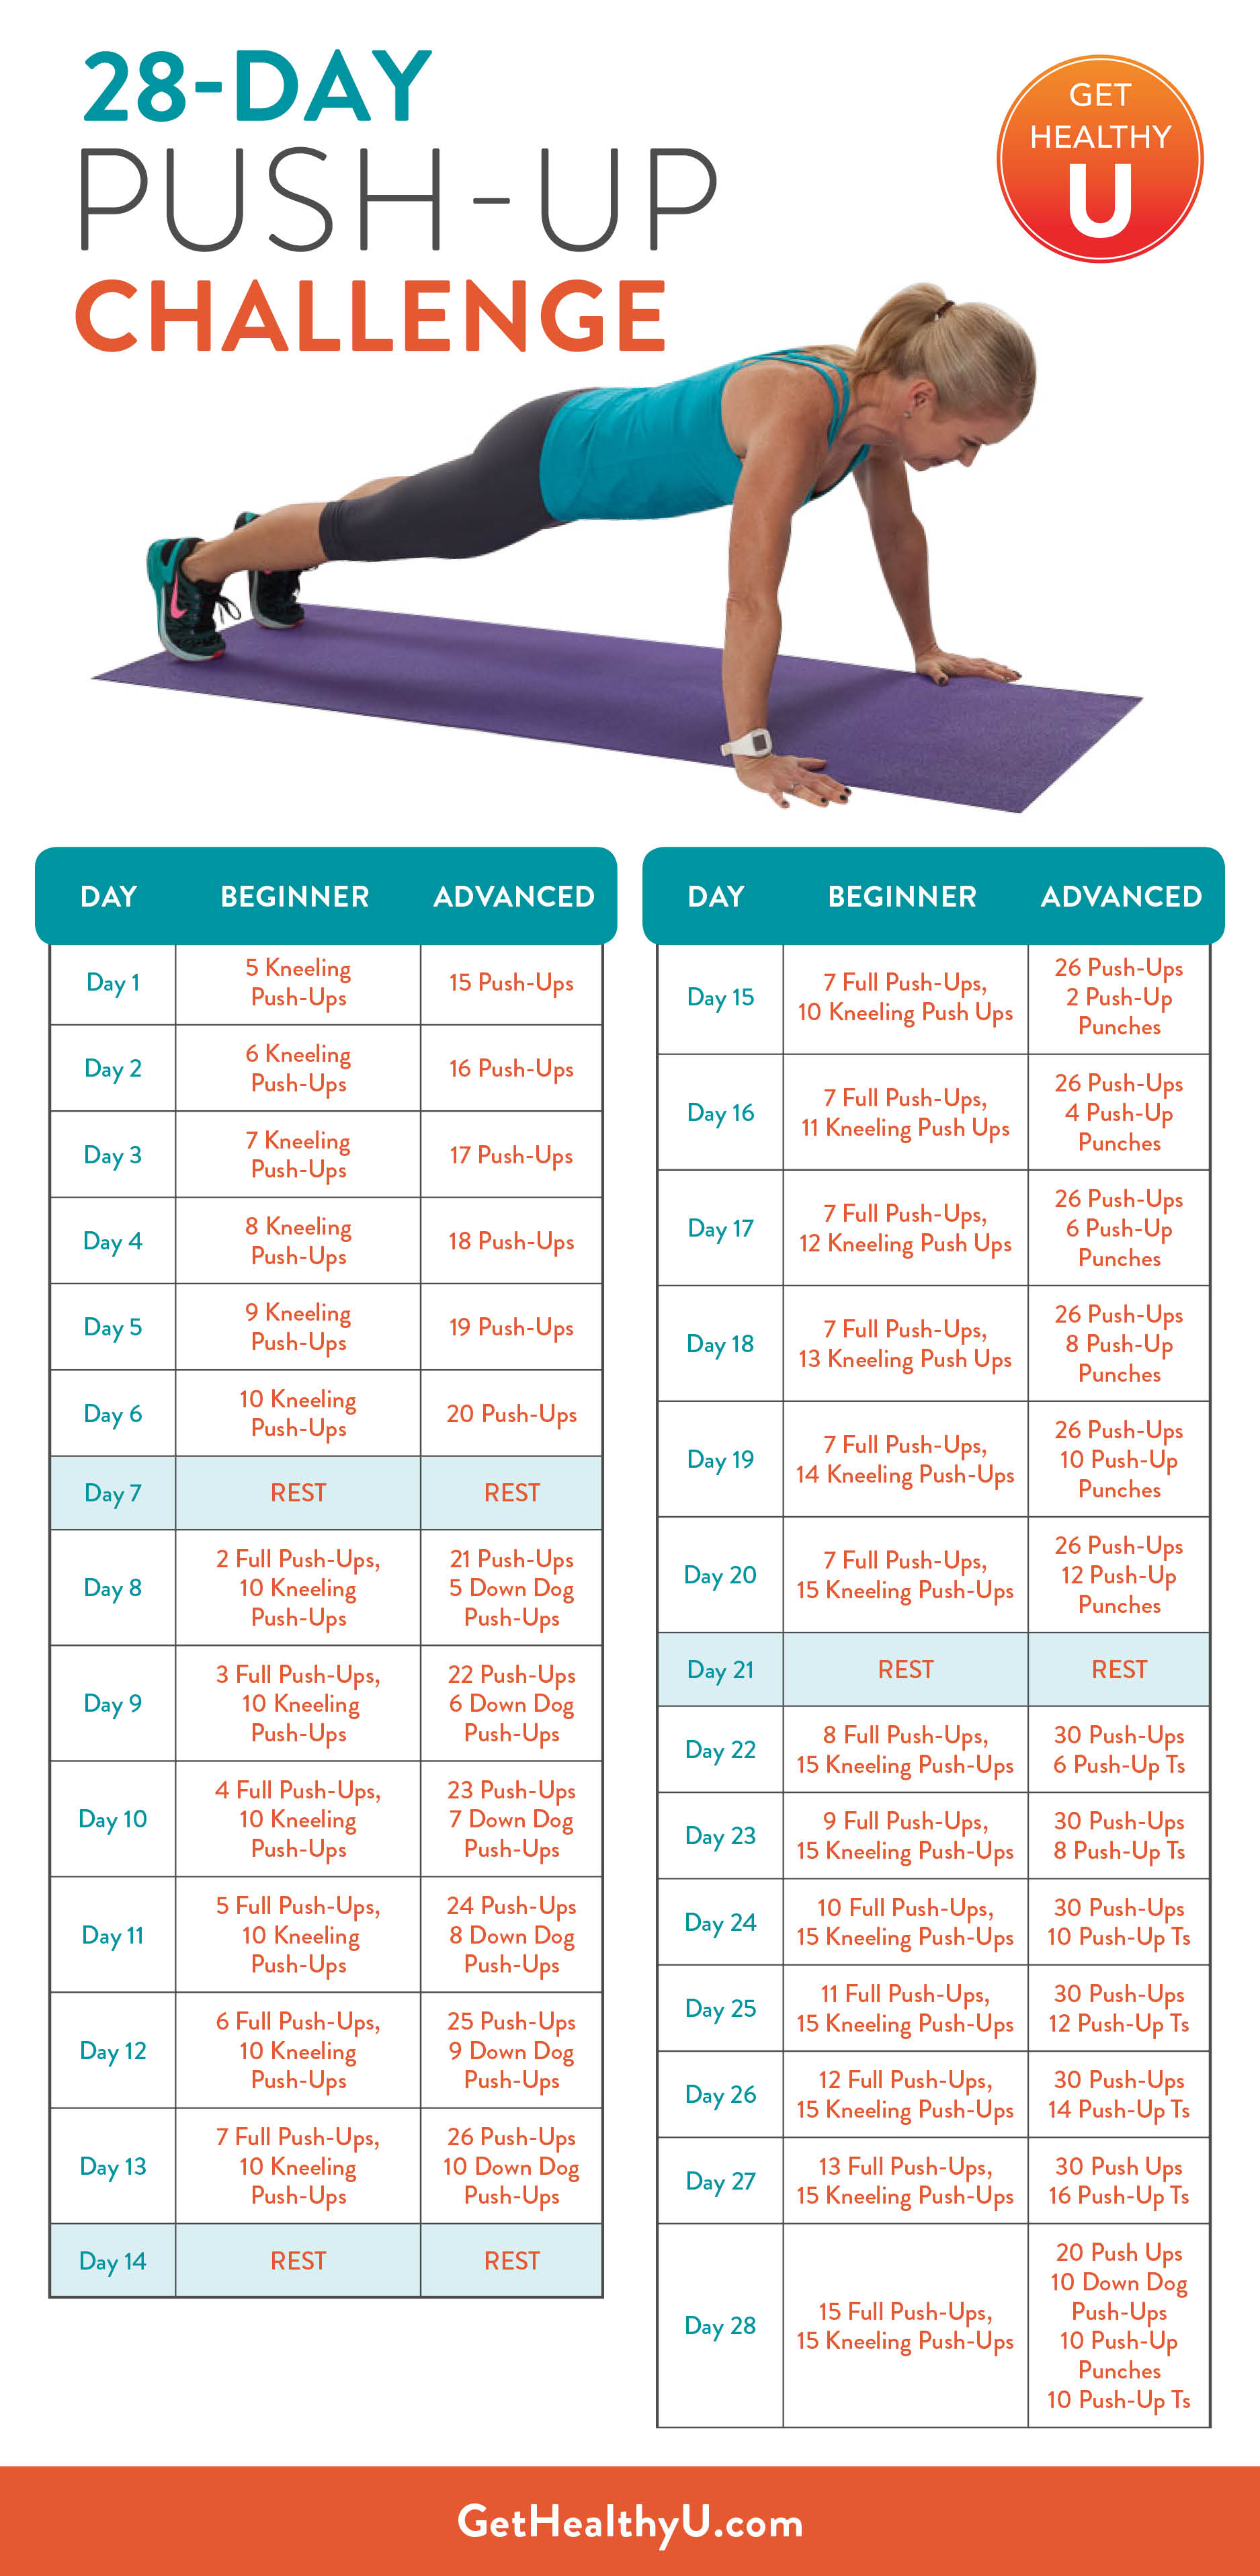 Girls Fit 28 Day Challenge Guide 1422 · 1067